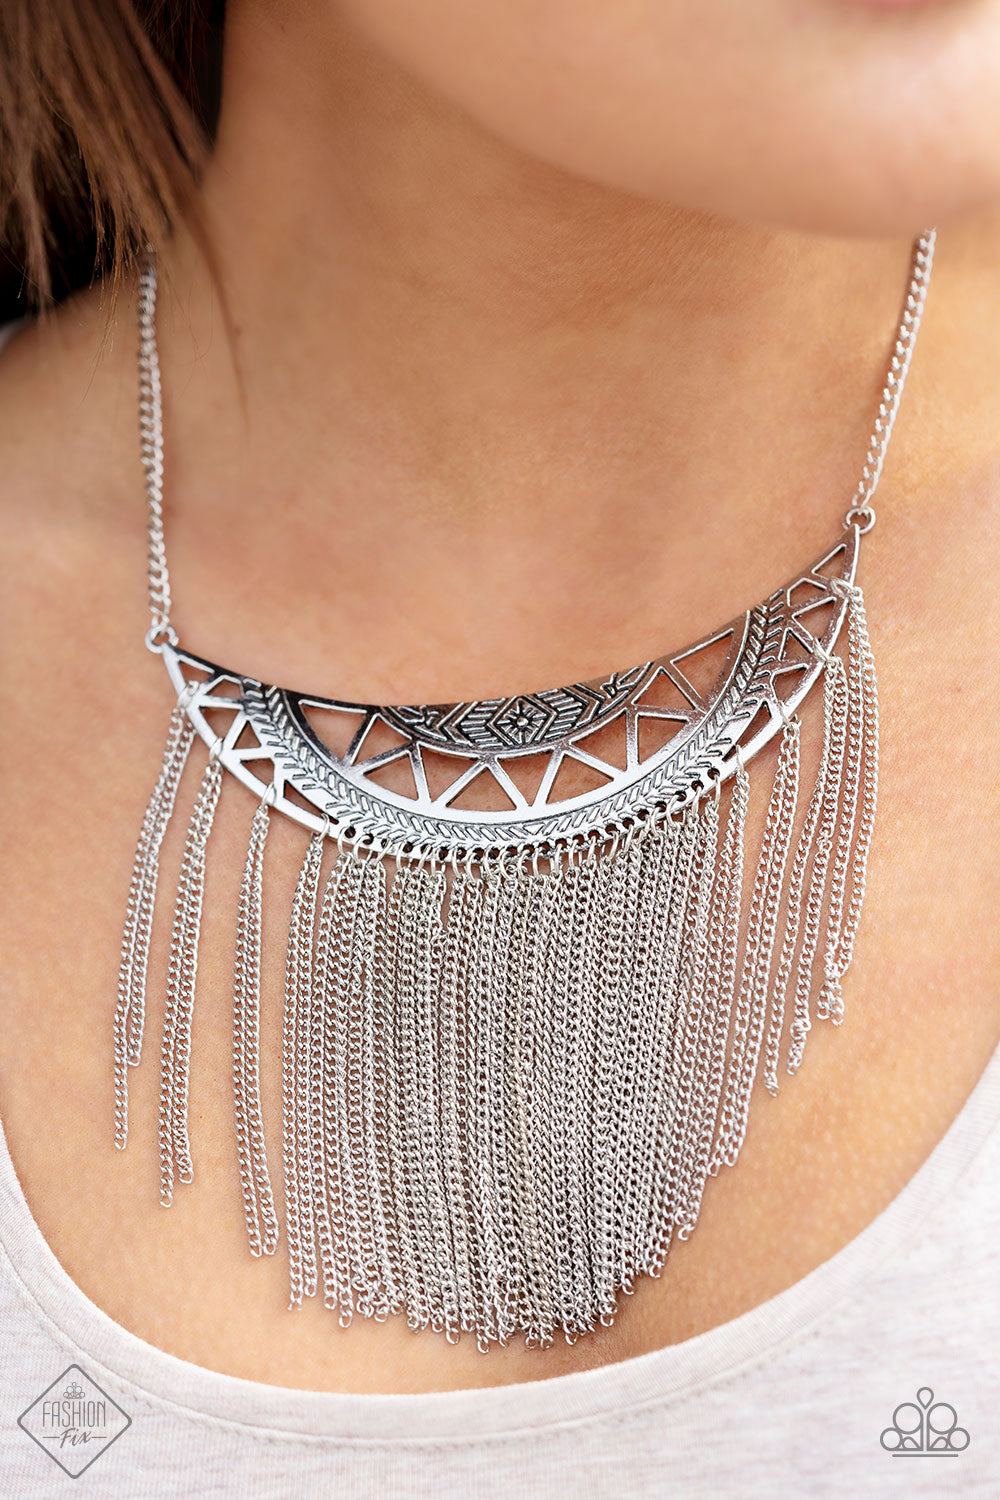 Empress Excursion - Silver Paparazzi Necklace - Pink Dragon Jewels